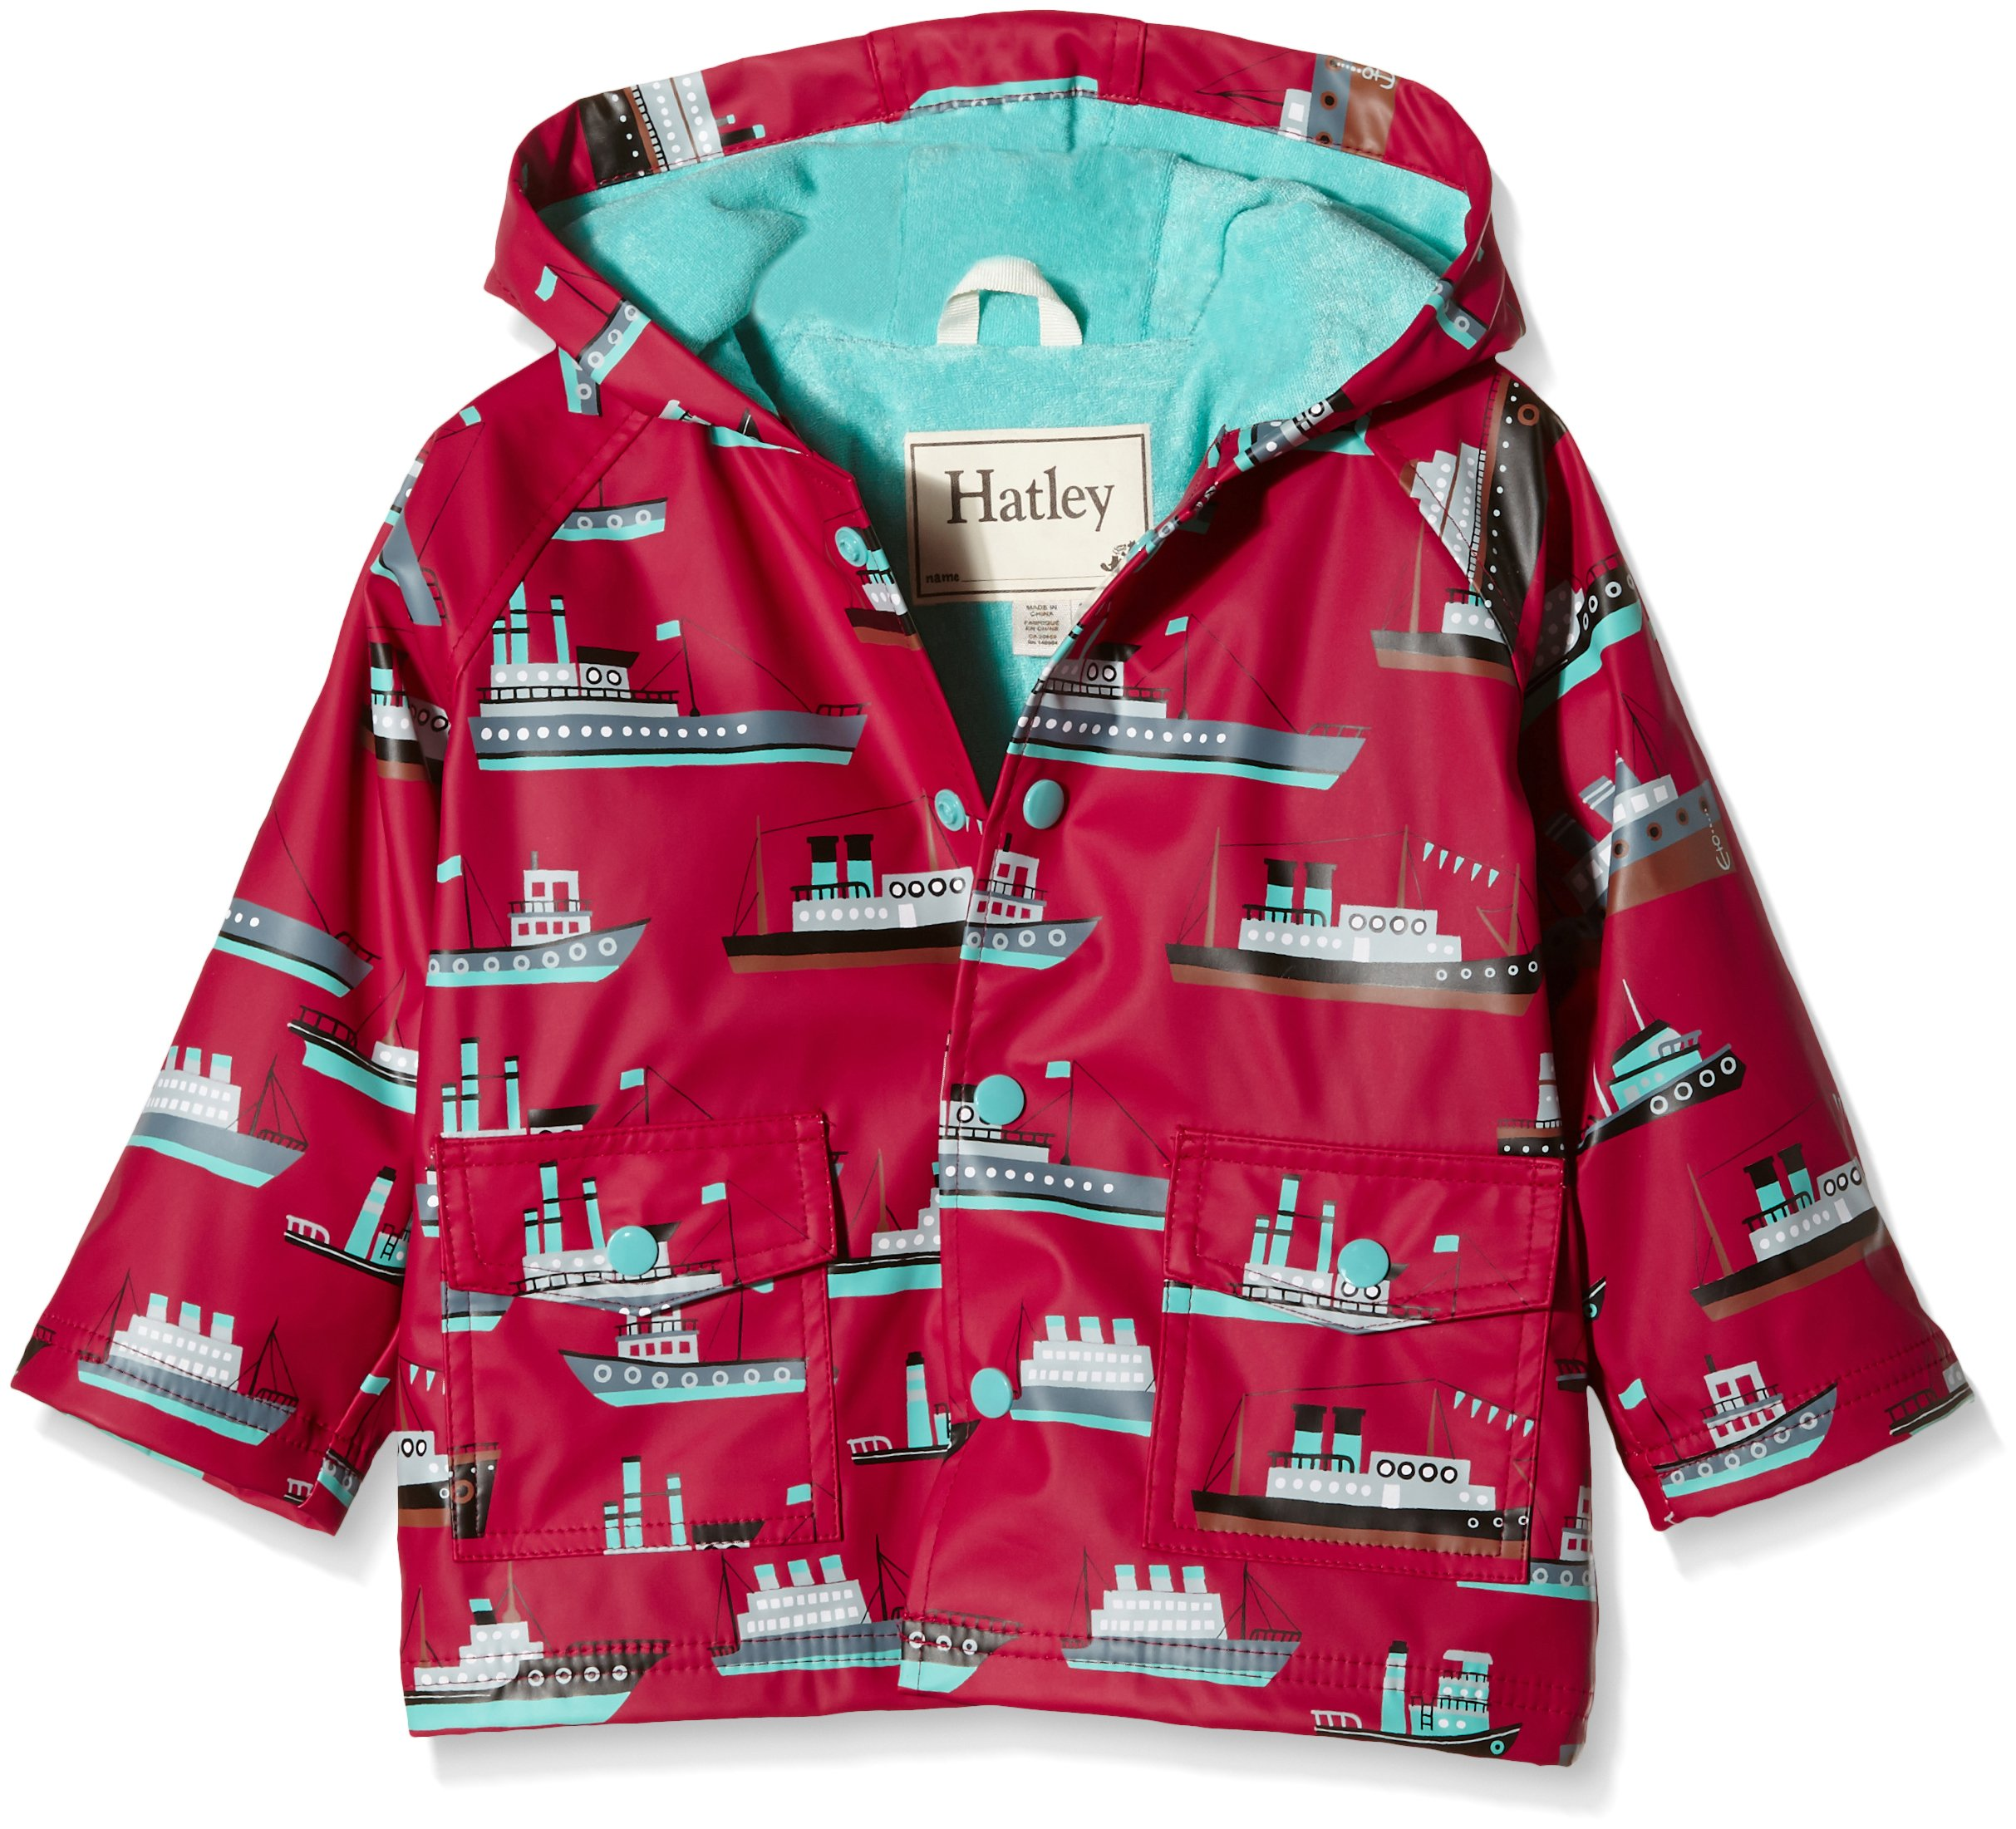 Hatley Baby Ocean Liner Infant Raincoat, Red, 12-18 Months by Hatley